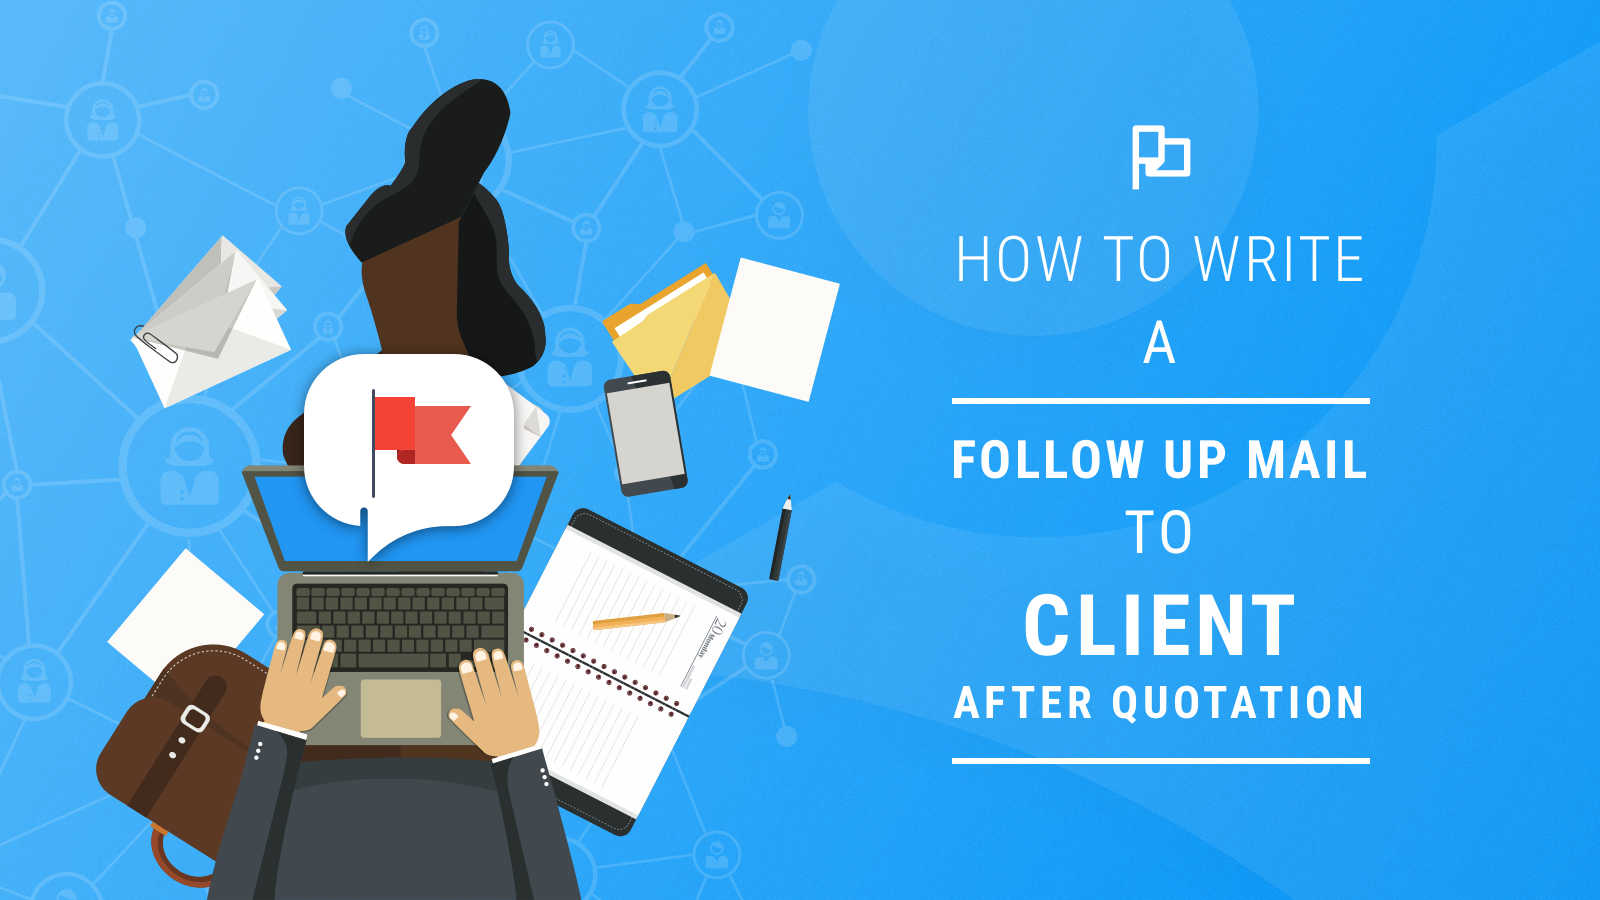 How to write a follow up email to client after quotation nethunt crm follow up emait after quotation spiritdancerdesigns Images